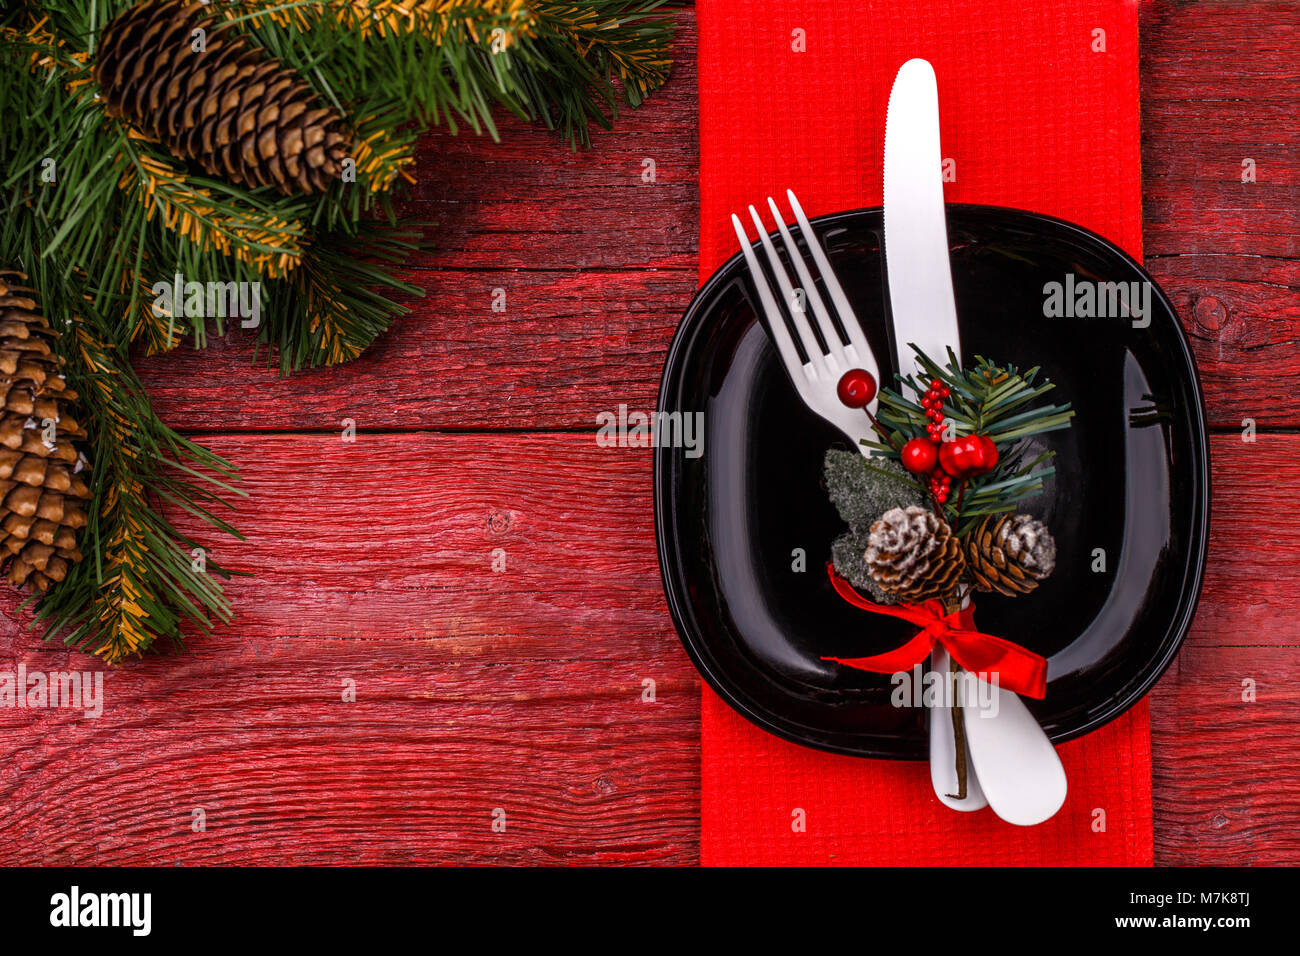 Christmas Table Place Setting With Red Napkin Black Plate White Stock Photo Alamy